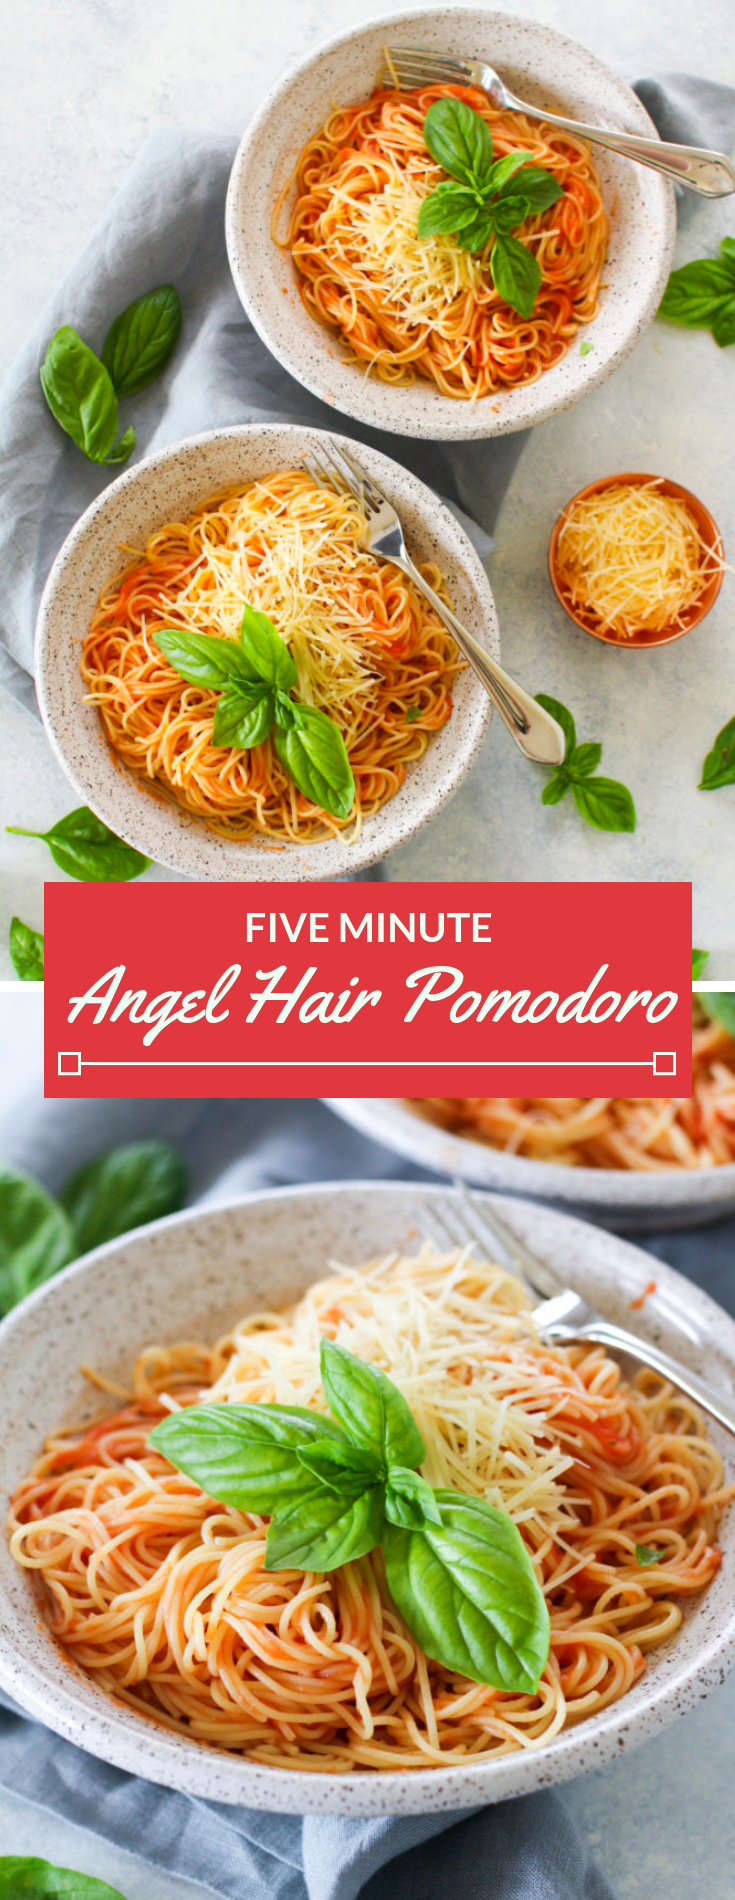 This Angel Hair Pomodoro comes together in just five minutes, due to it's four ingredient sauce! Simply puree plum tomatoes, olive oil, garlic and salt and toss with hot angel hair pasta.